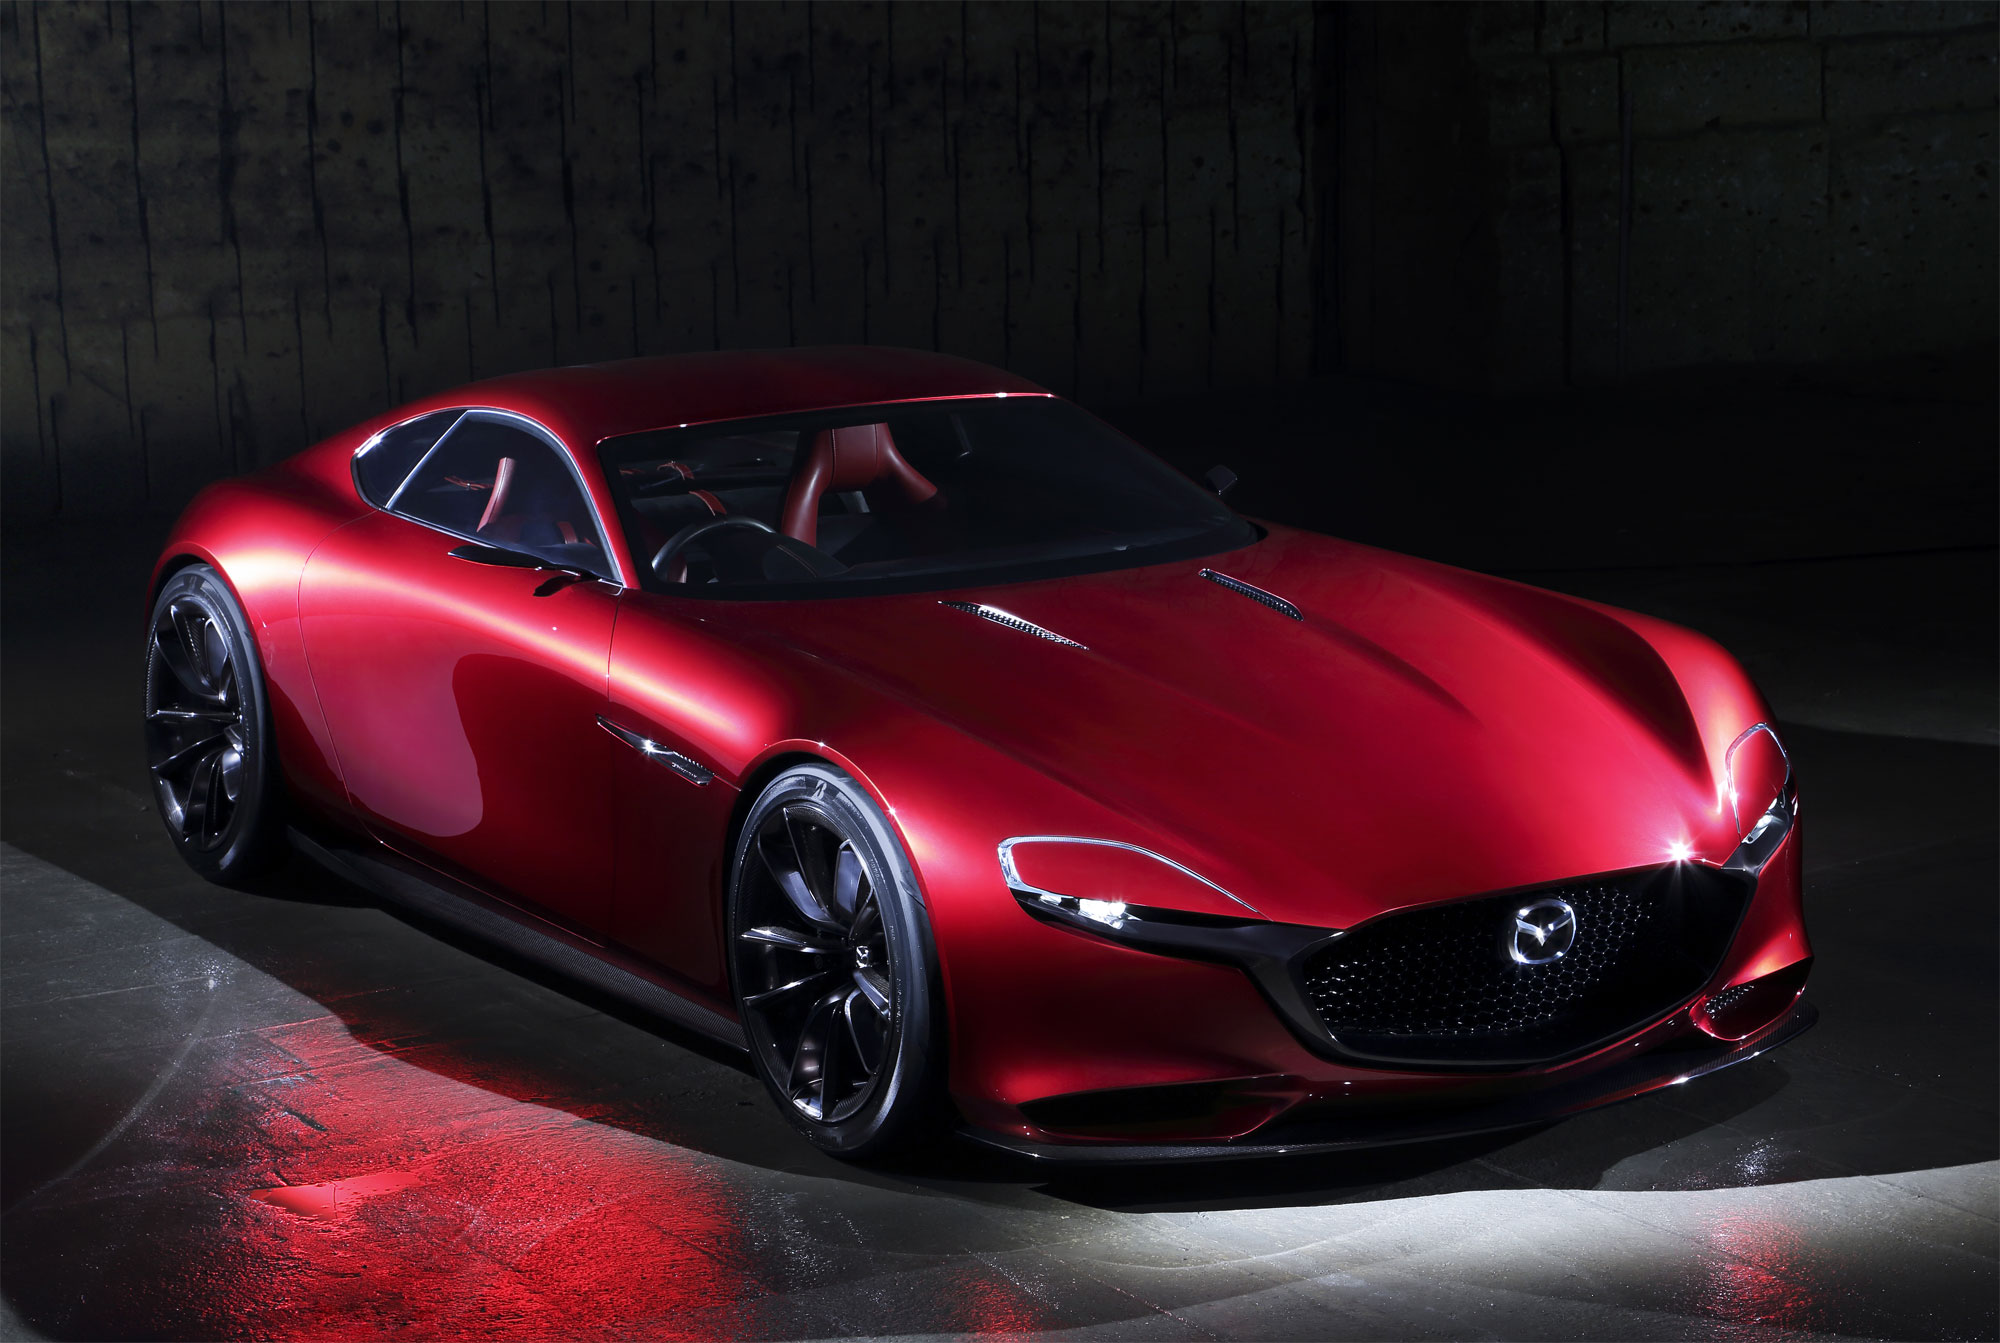 Mazda RX-VISION Concept - A vision of the Future that Harbors the Soul of the Mazda Brand